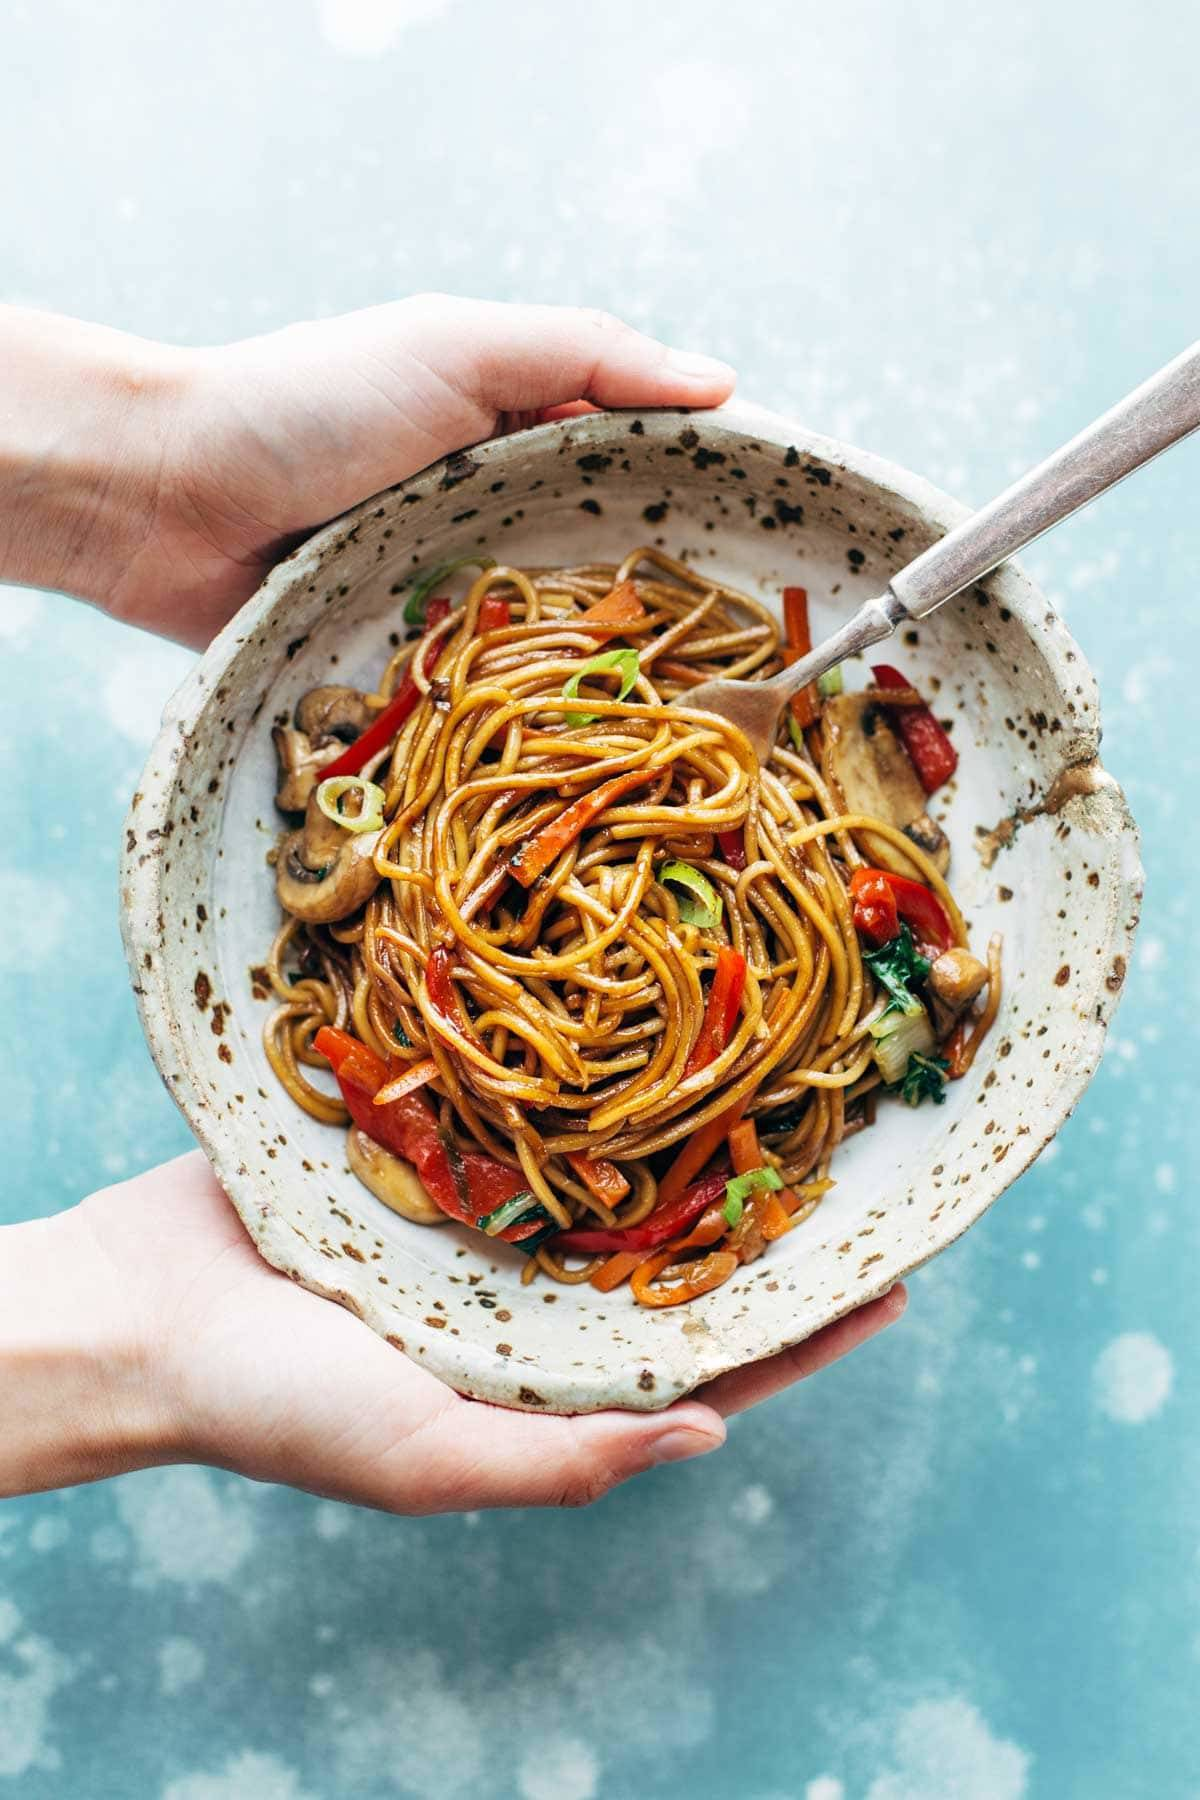 15 Minute Lo Mein! made with just soy sauce, sesame oil, a pinch of sugar, noodles, and any veggies or protein you like. SO YUMMY! vegan, vegetarian.  pinchofyum.com